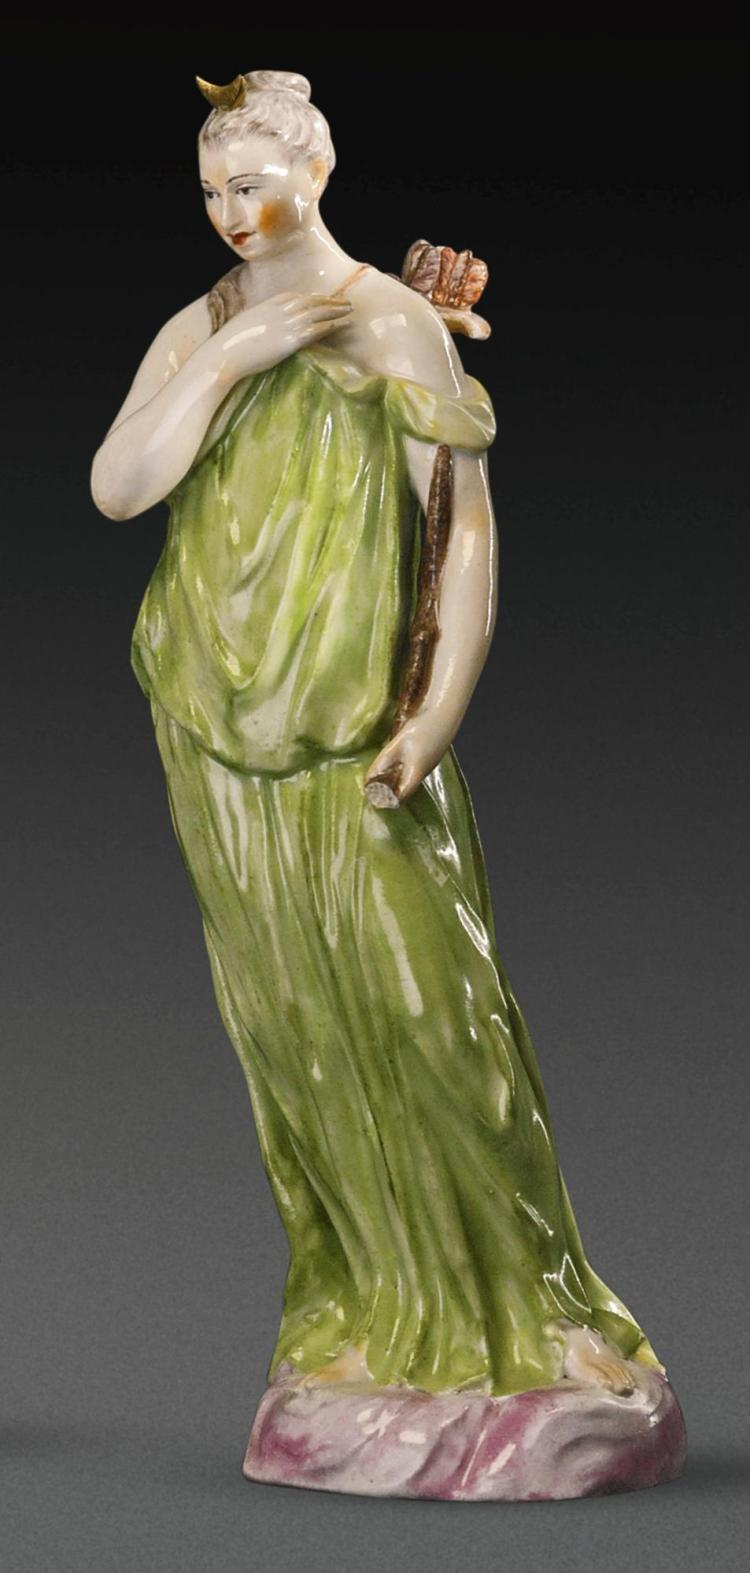 A KLOSTER VEILSDORF PORCELAIN FIGURE OF DIANA FROM THE 'SEVEN PLANETS' SERIES, CIRCA 1765 |